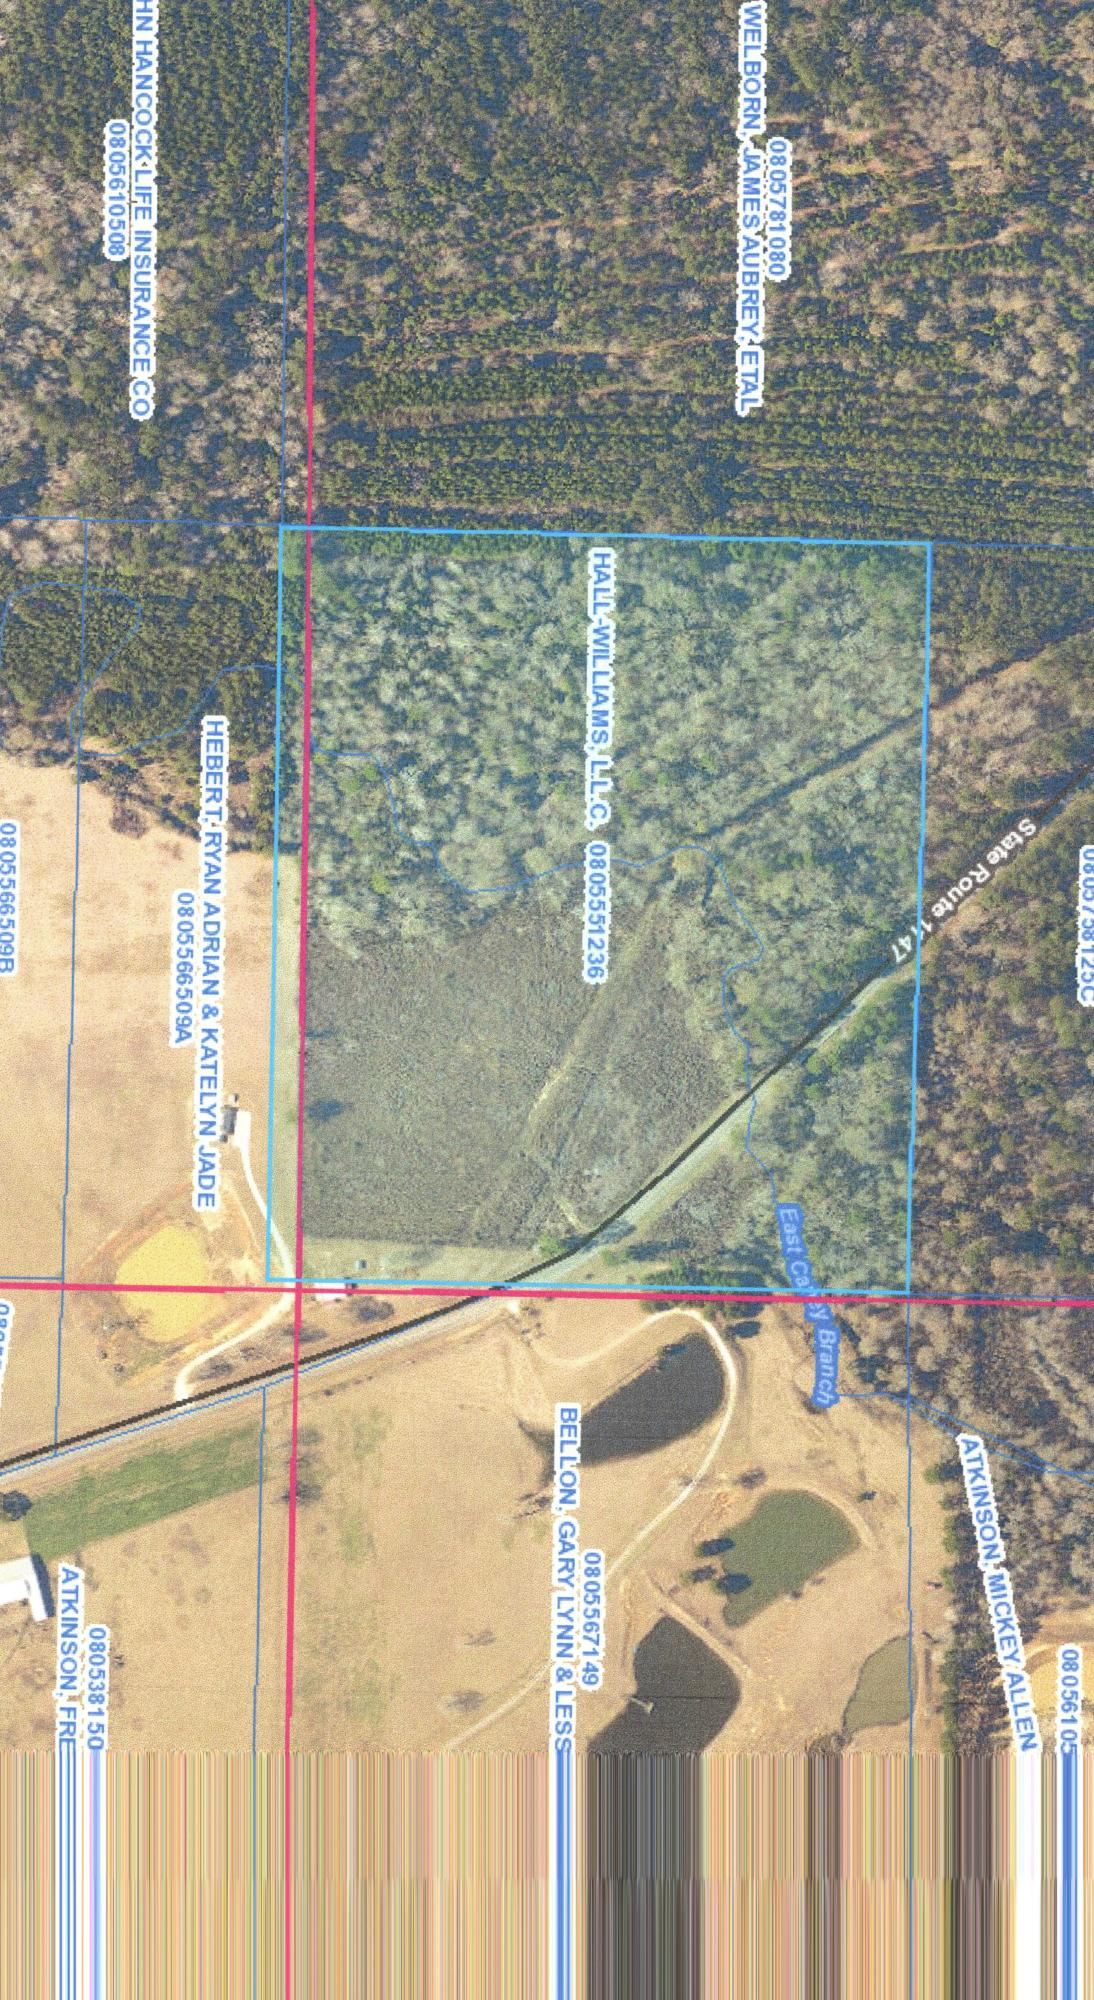 DeRidder land for sale,  TBD HWY 1147 (TRACT B), DeRidder LA - $20,000